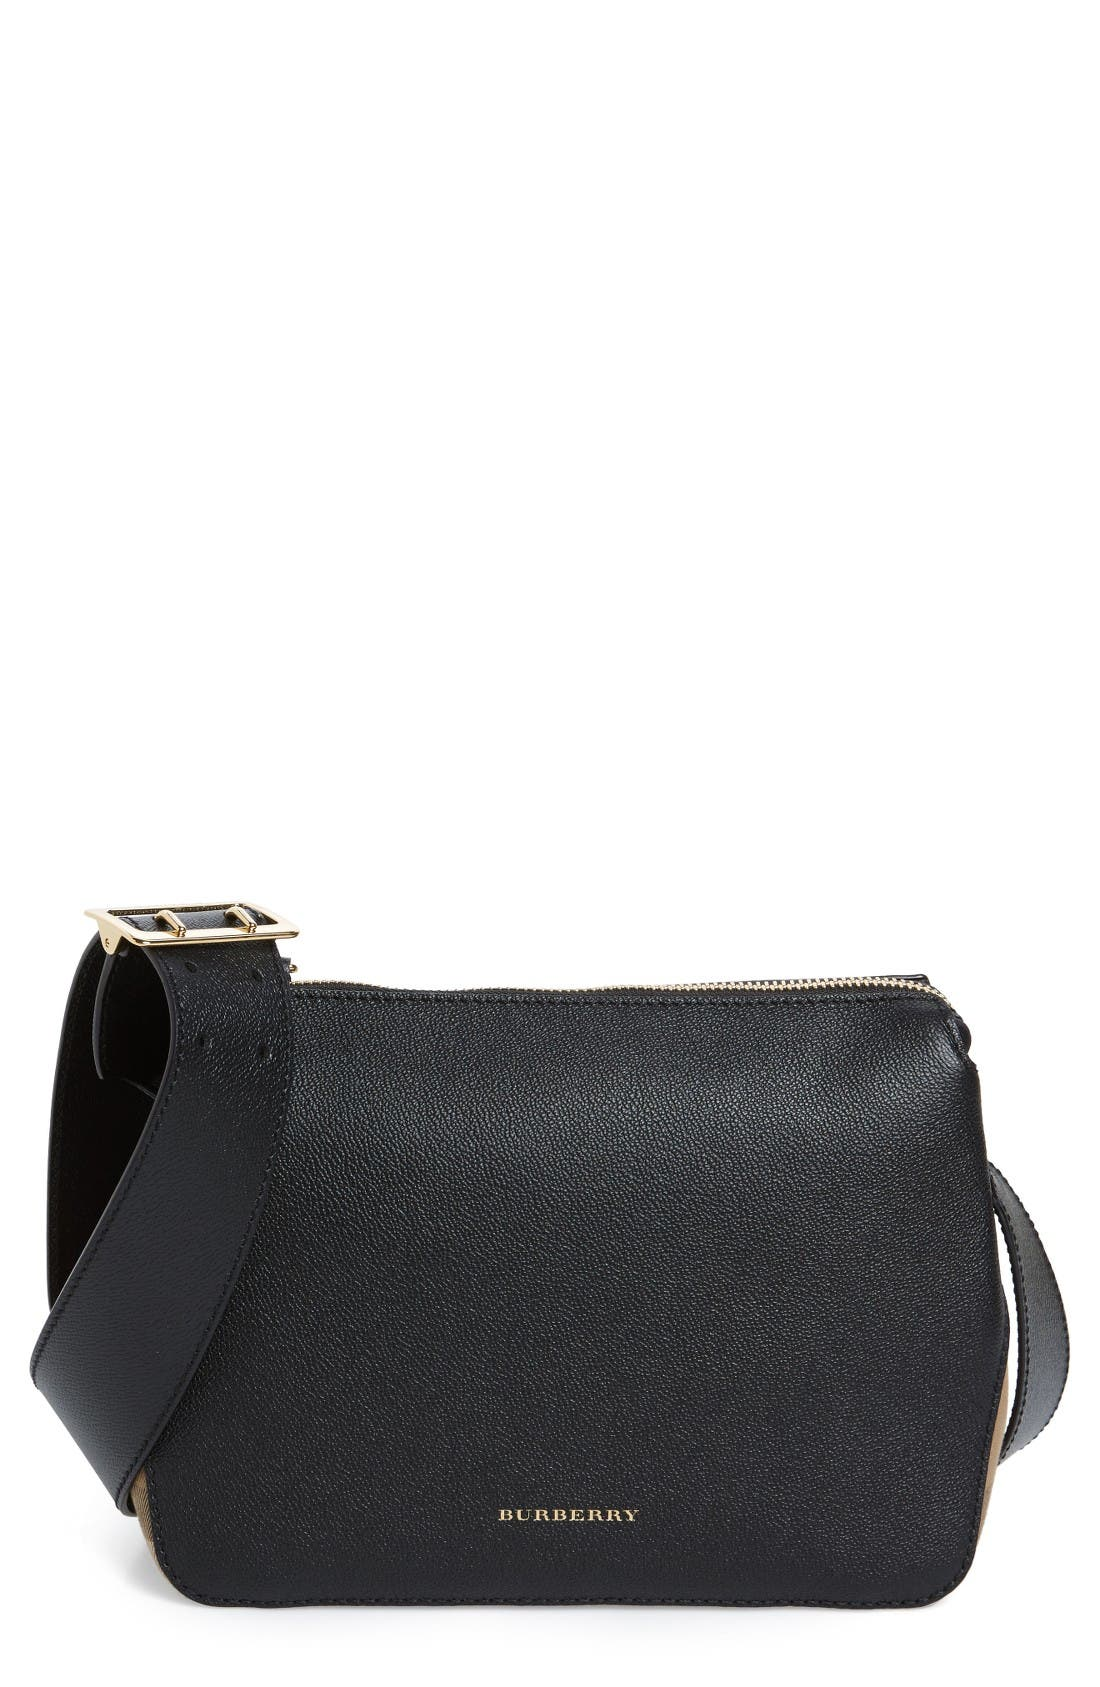 Main Image - Burberry Helmsley House Check Leather Crossbody Bag